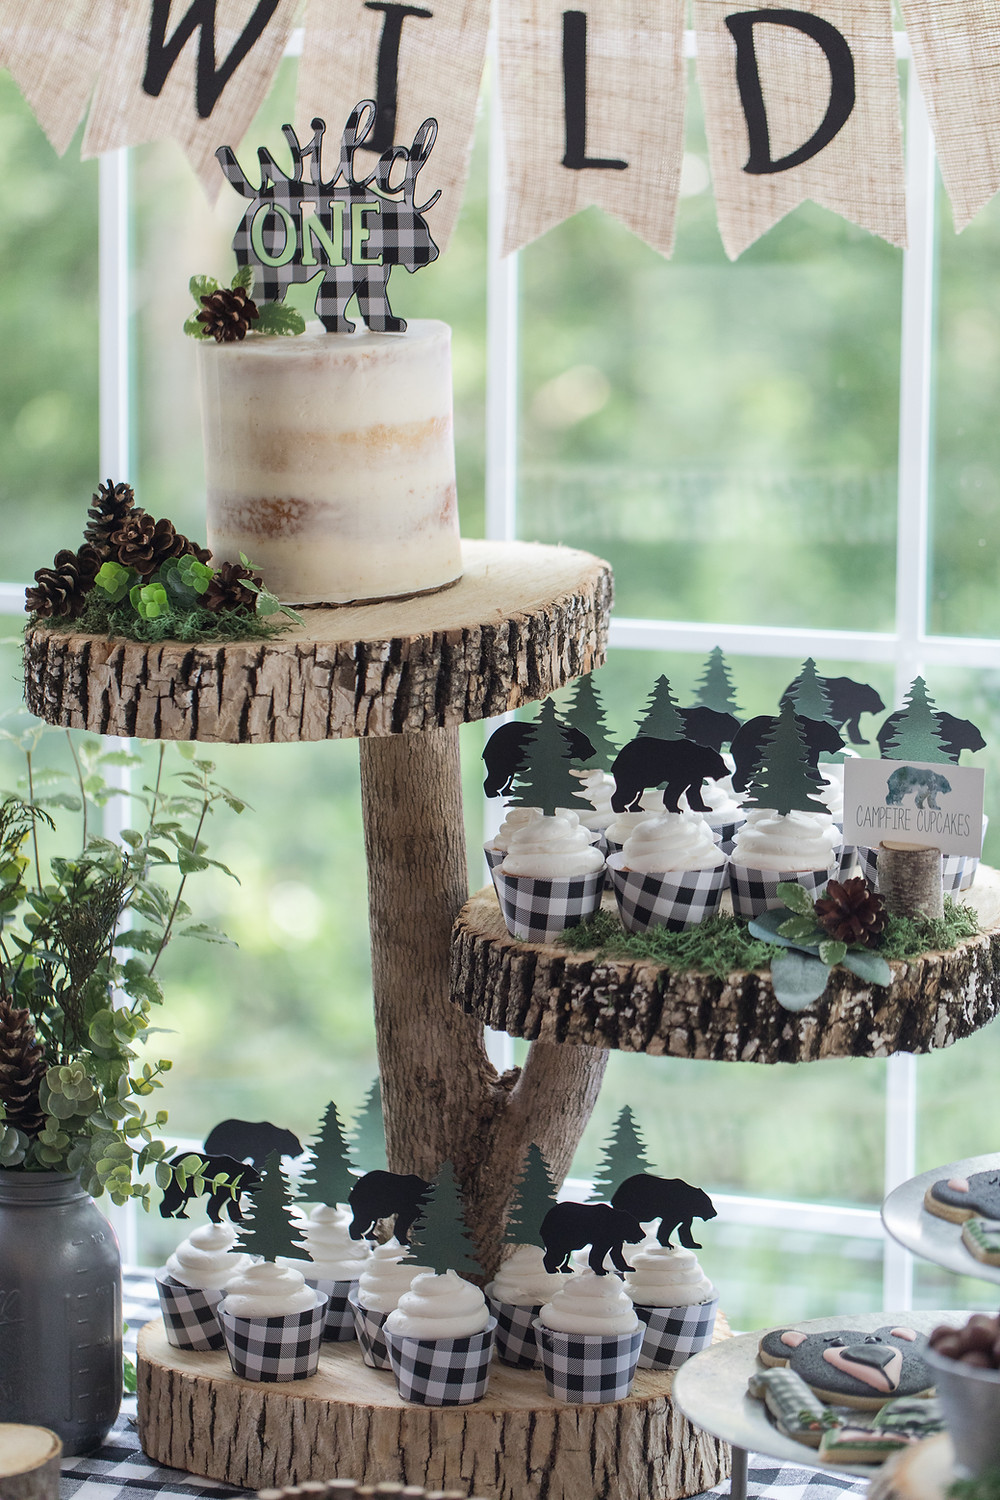 Bear Tree Cupcakes Semi Naked Birthday Cake - Wild One Smash Cake Photo Session - One Wild Year - Boy's 1st Birthday Party - Ideas, inspiration, decor, party food and menu, kids activities and games, cake smash photo session, bear theme, wild one wilderness tree teepee outdoor theme, decorations, cake, cookies, and more!